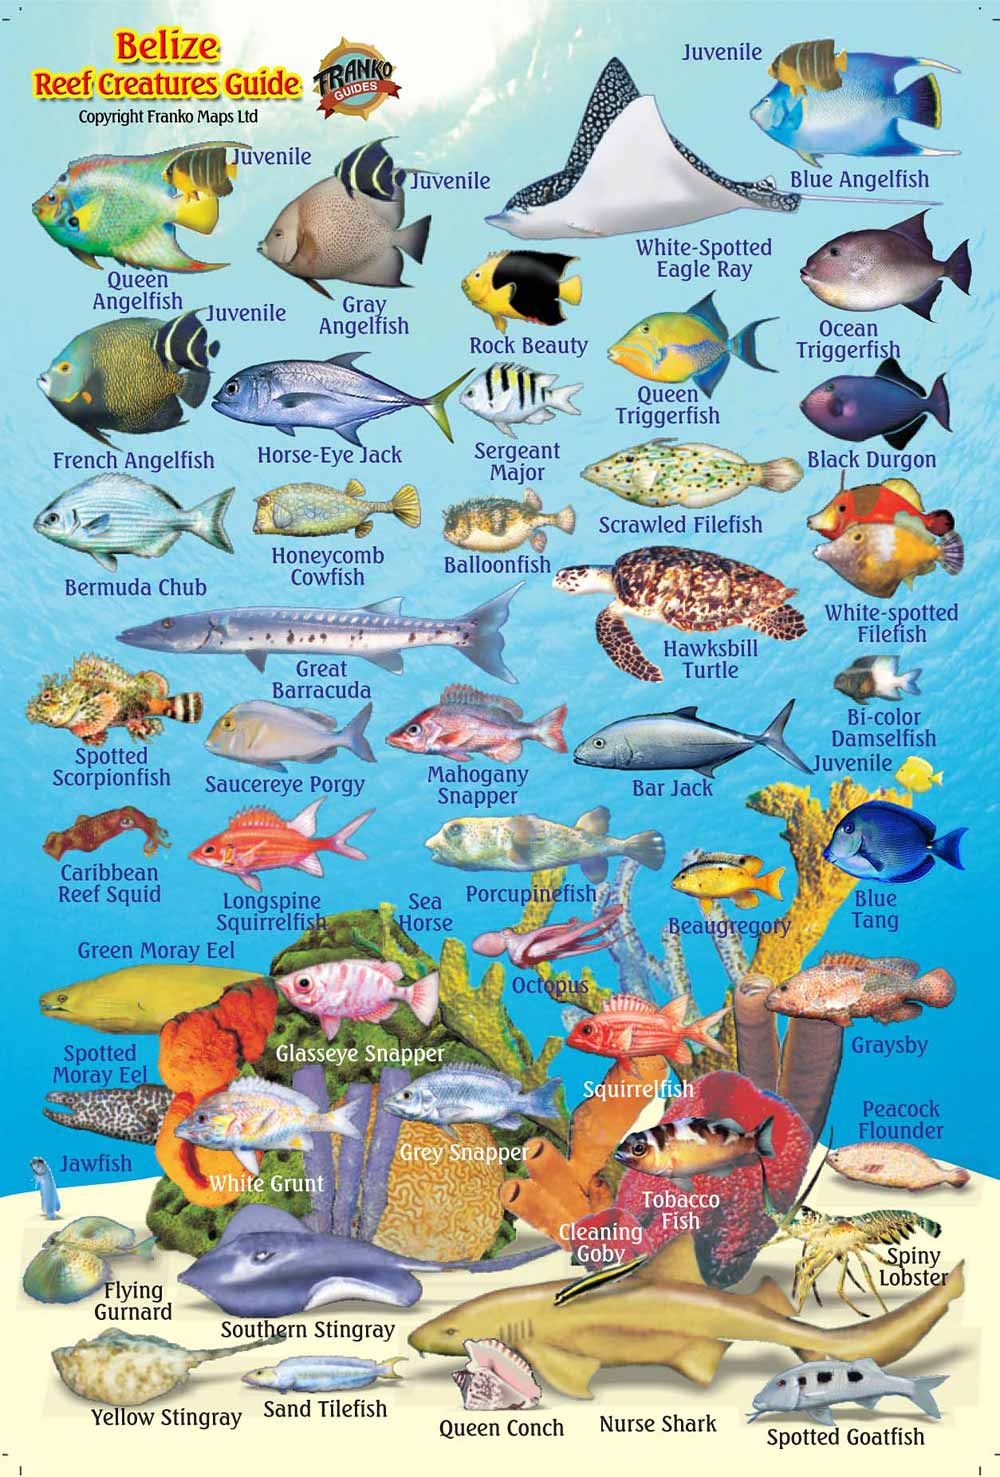 Caribbean reef life: caribbean reef life a field guide for.